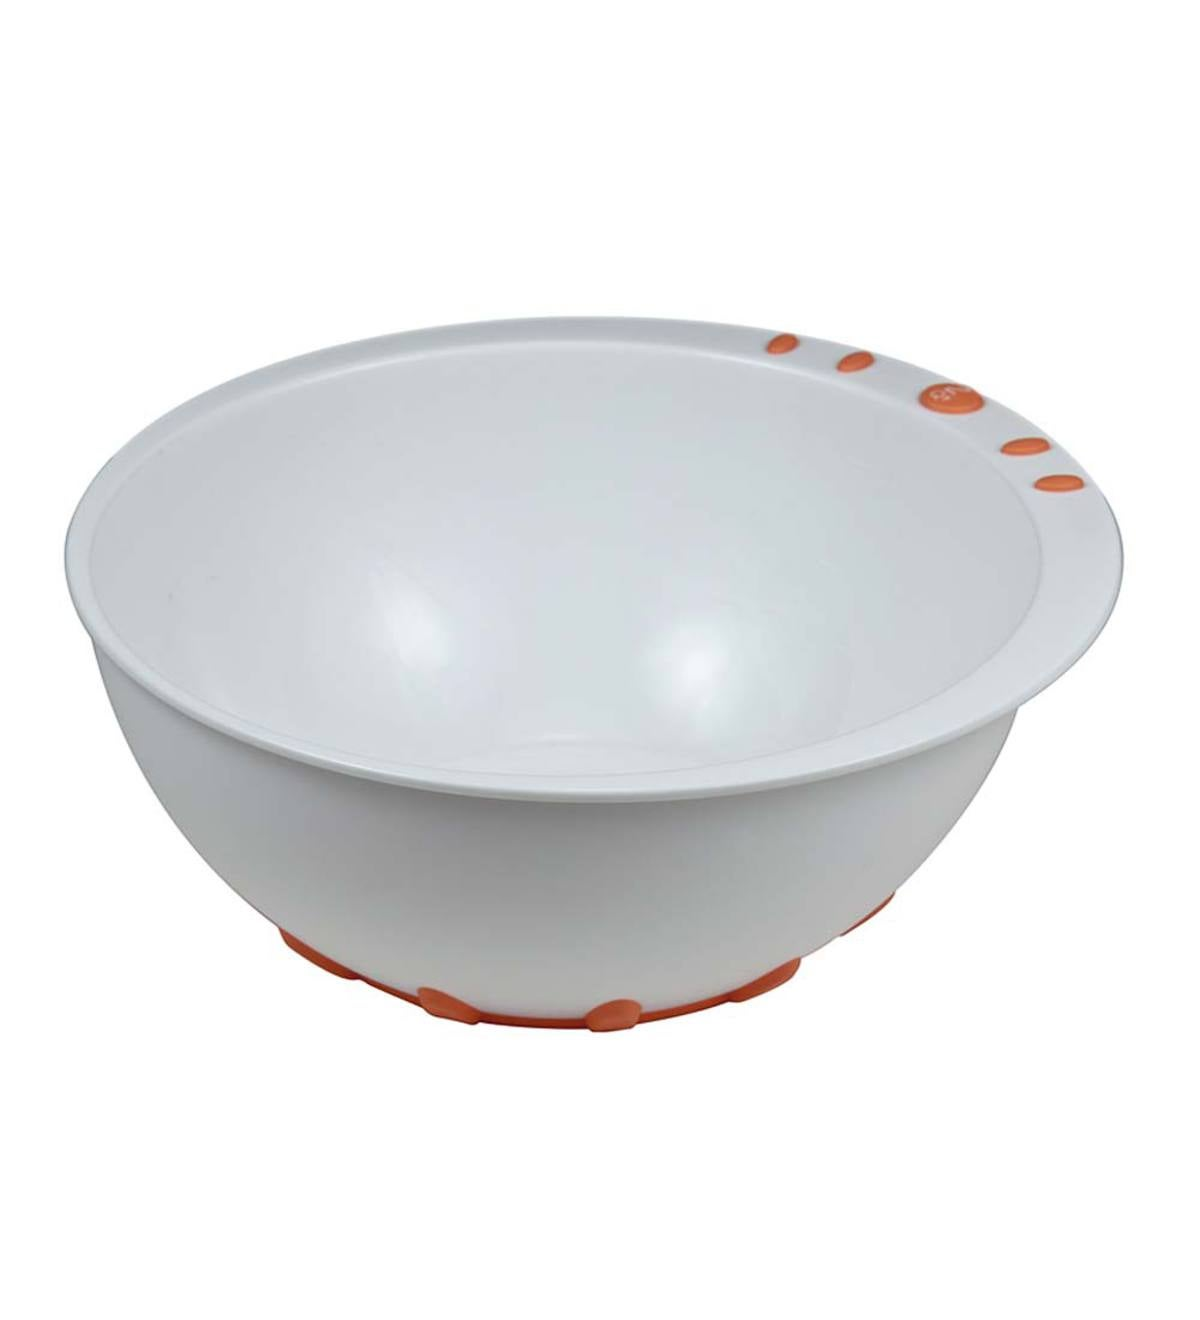 Kids' 2-Quart Mixing Bowl